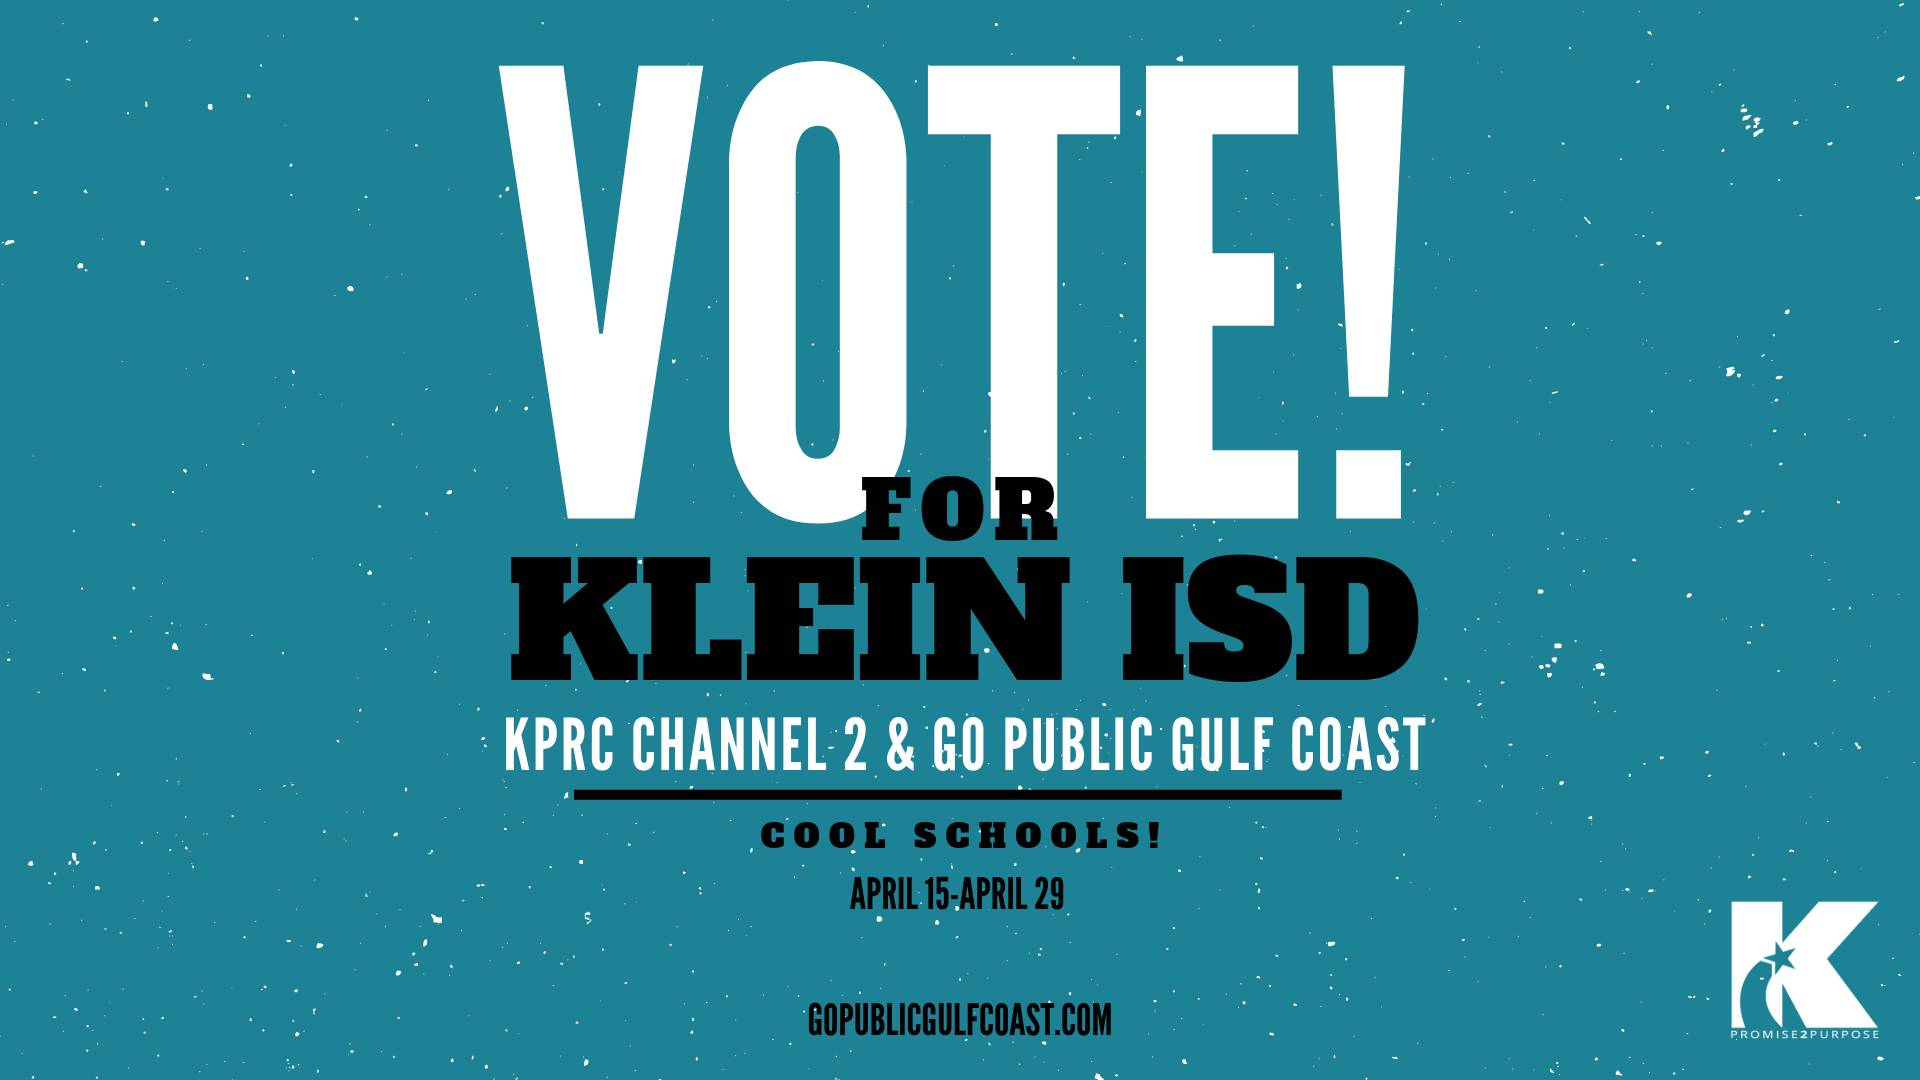 Vote for Klein ISD in Go Public Gulf Coast and KPRC Channel 2 Contest